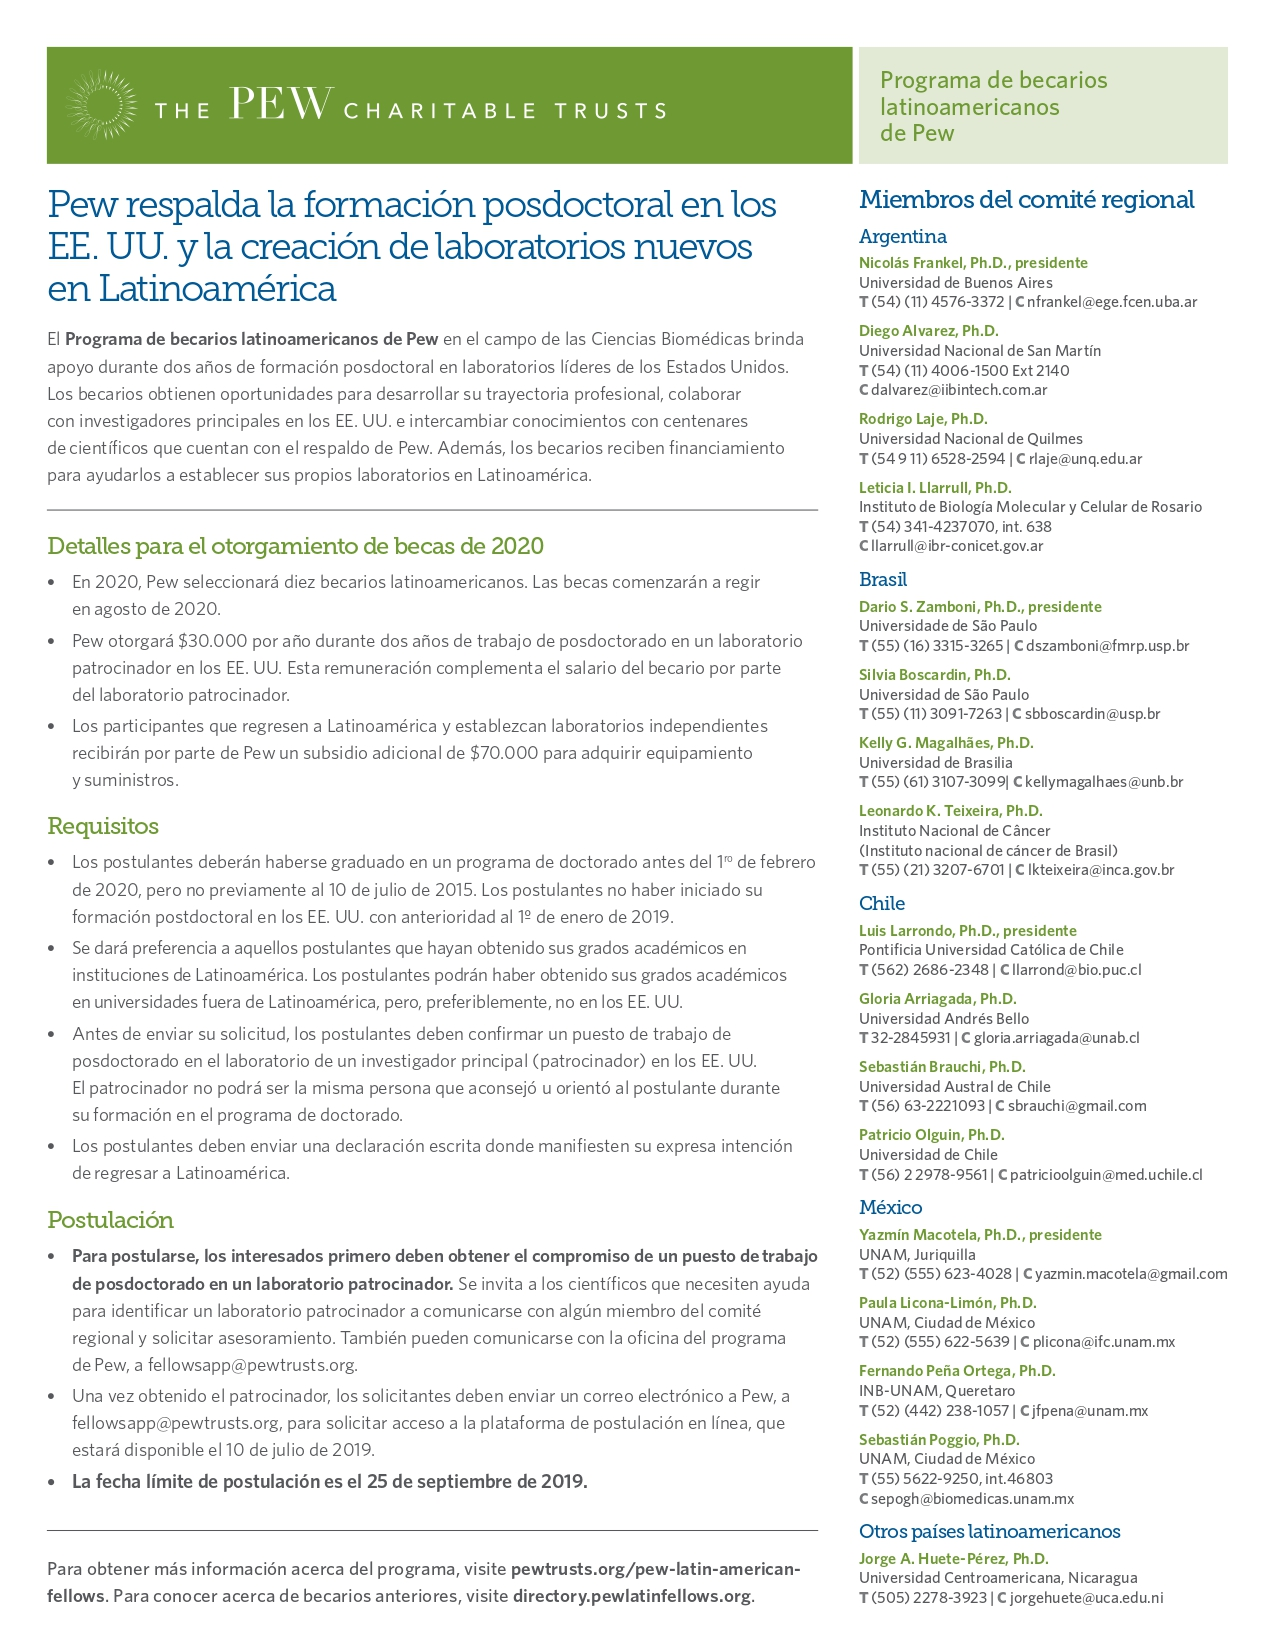 Final flyer - Pew Latin American Fellows - Spanish - 2020 cycle_page-0001